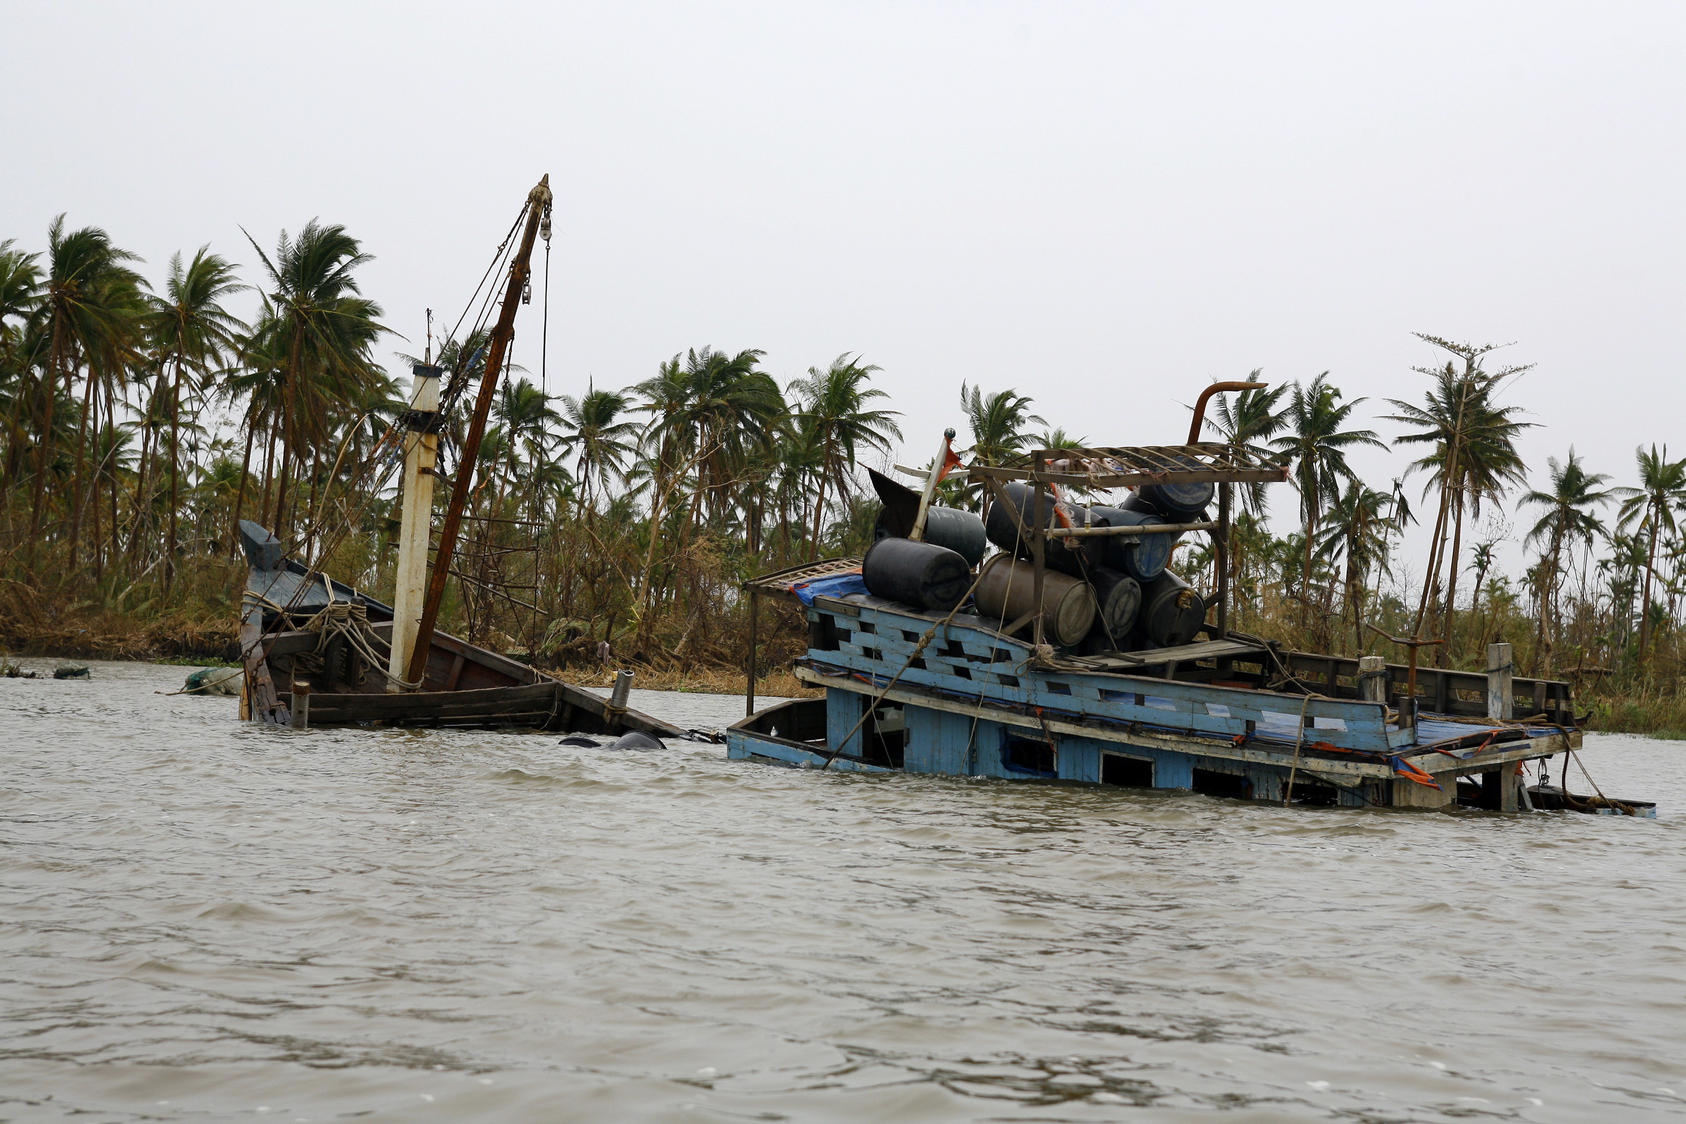 A sunk ferry near Pyapon, Myanmar